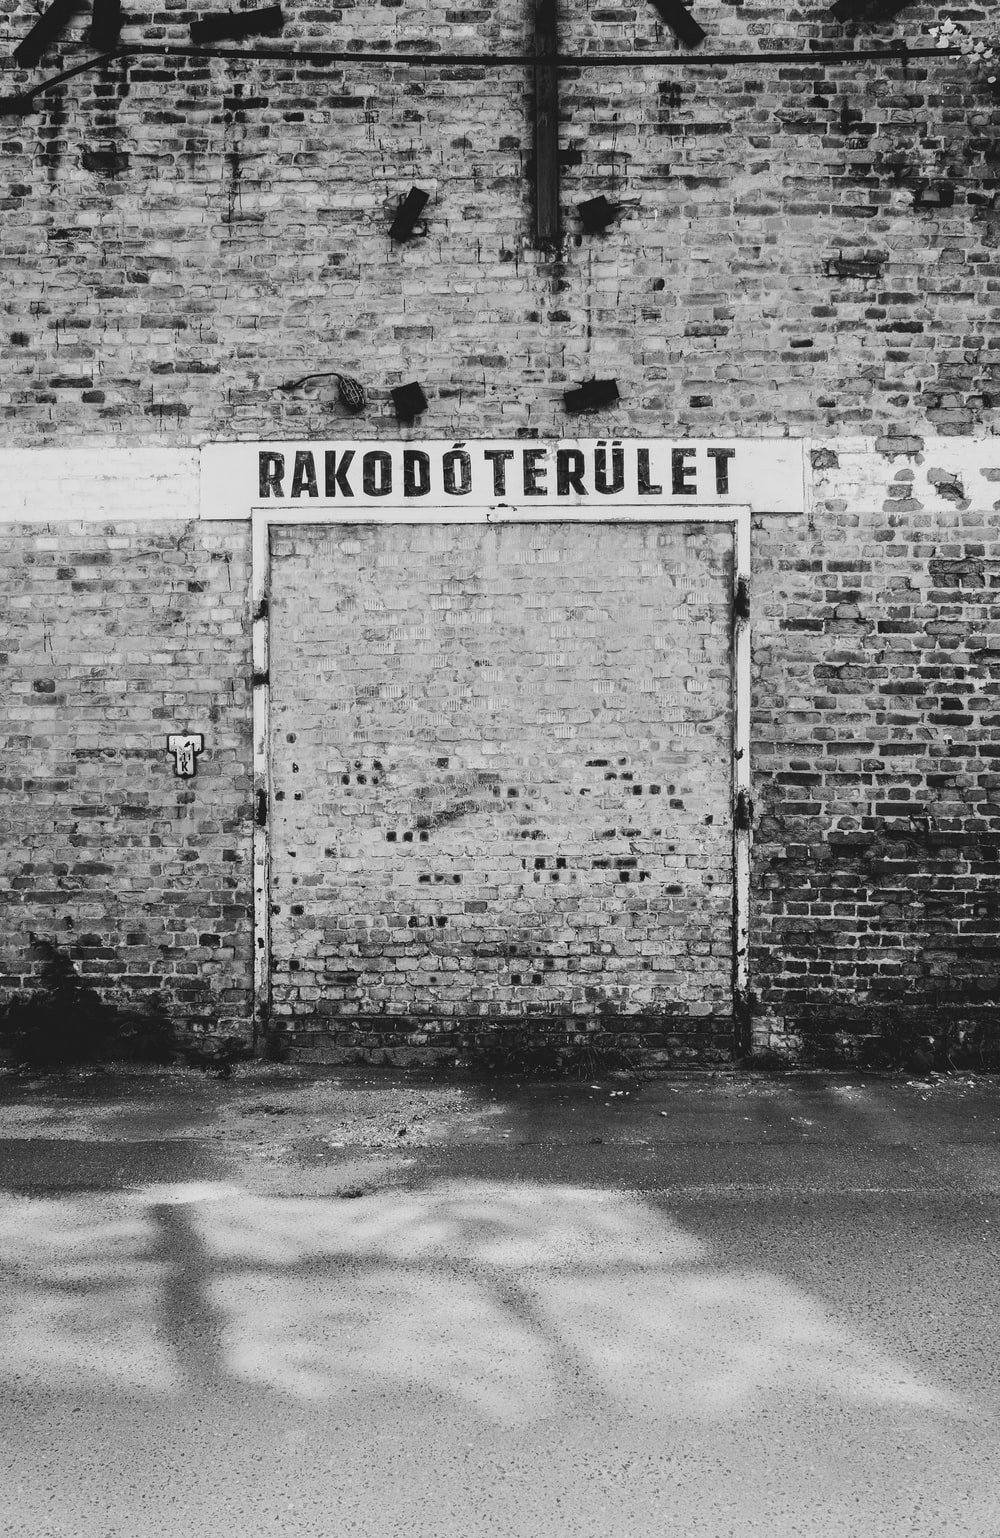 rakodoterulet sign on wall